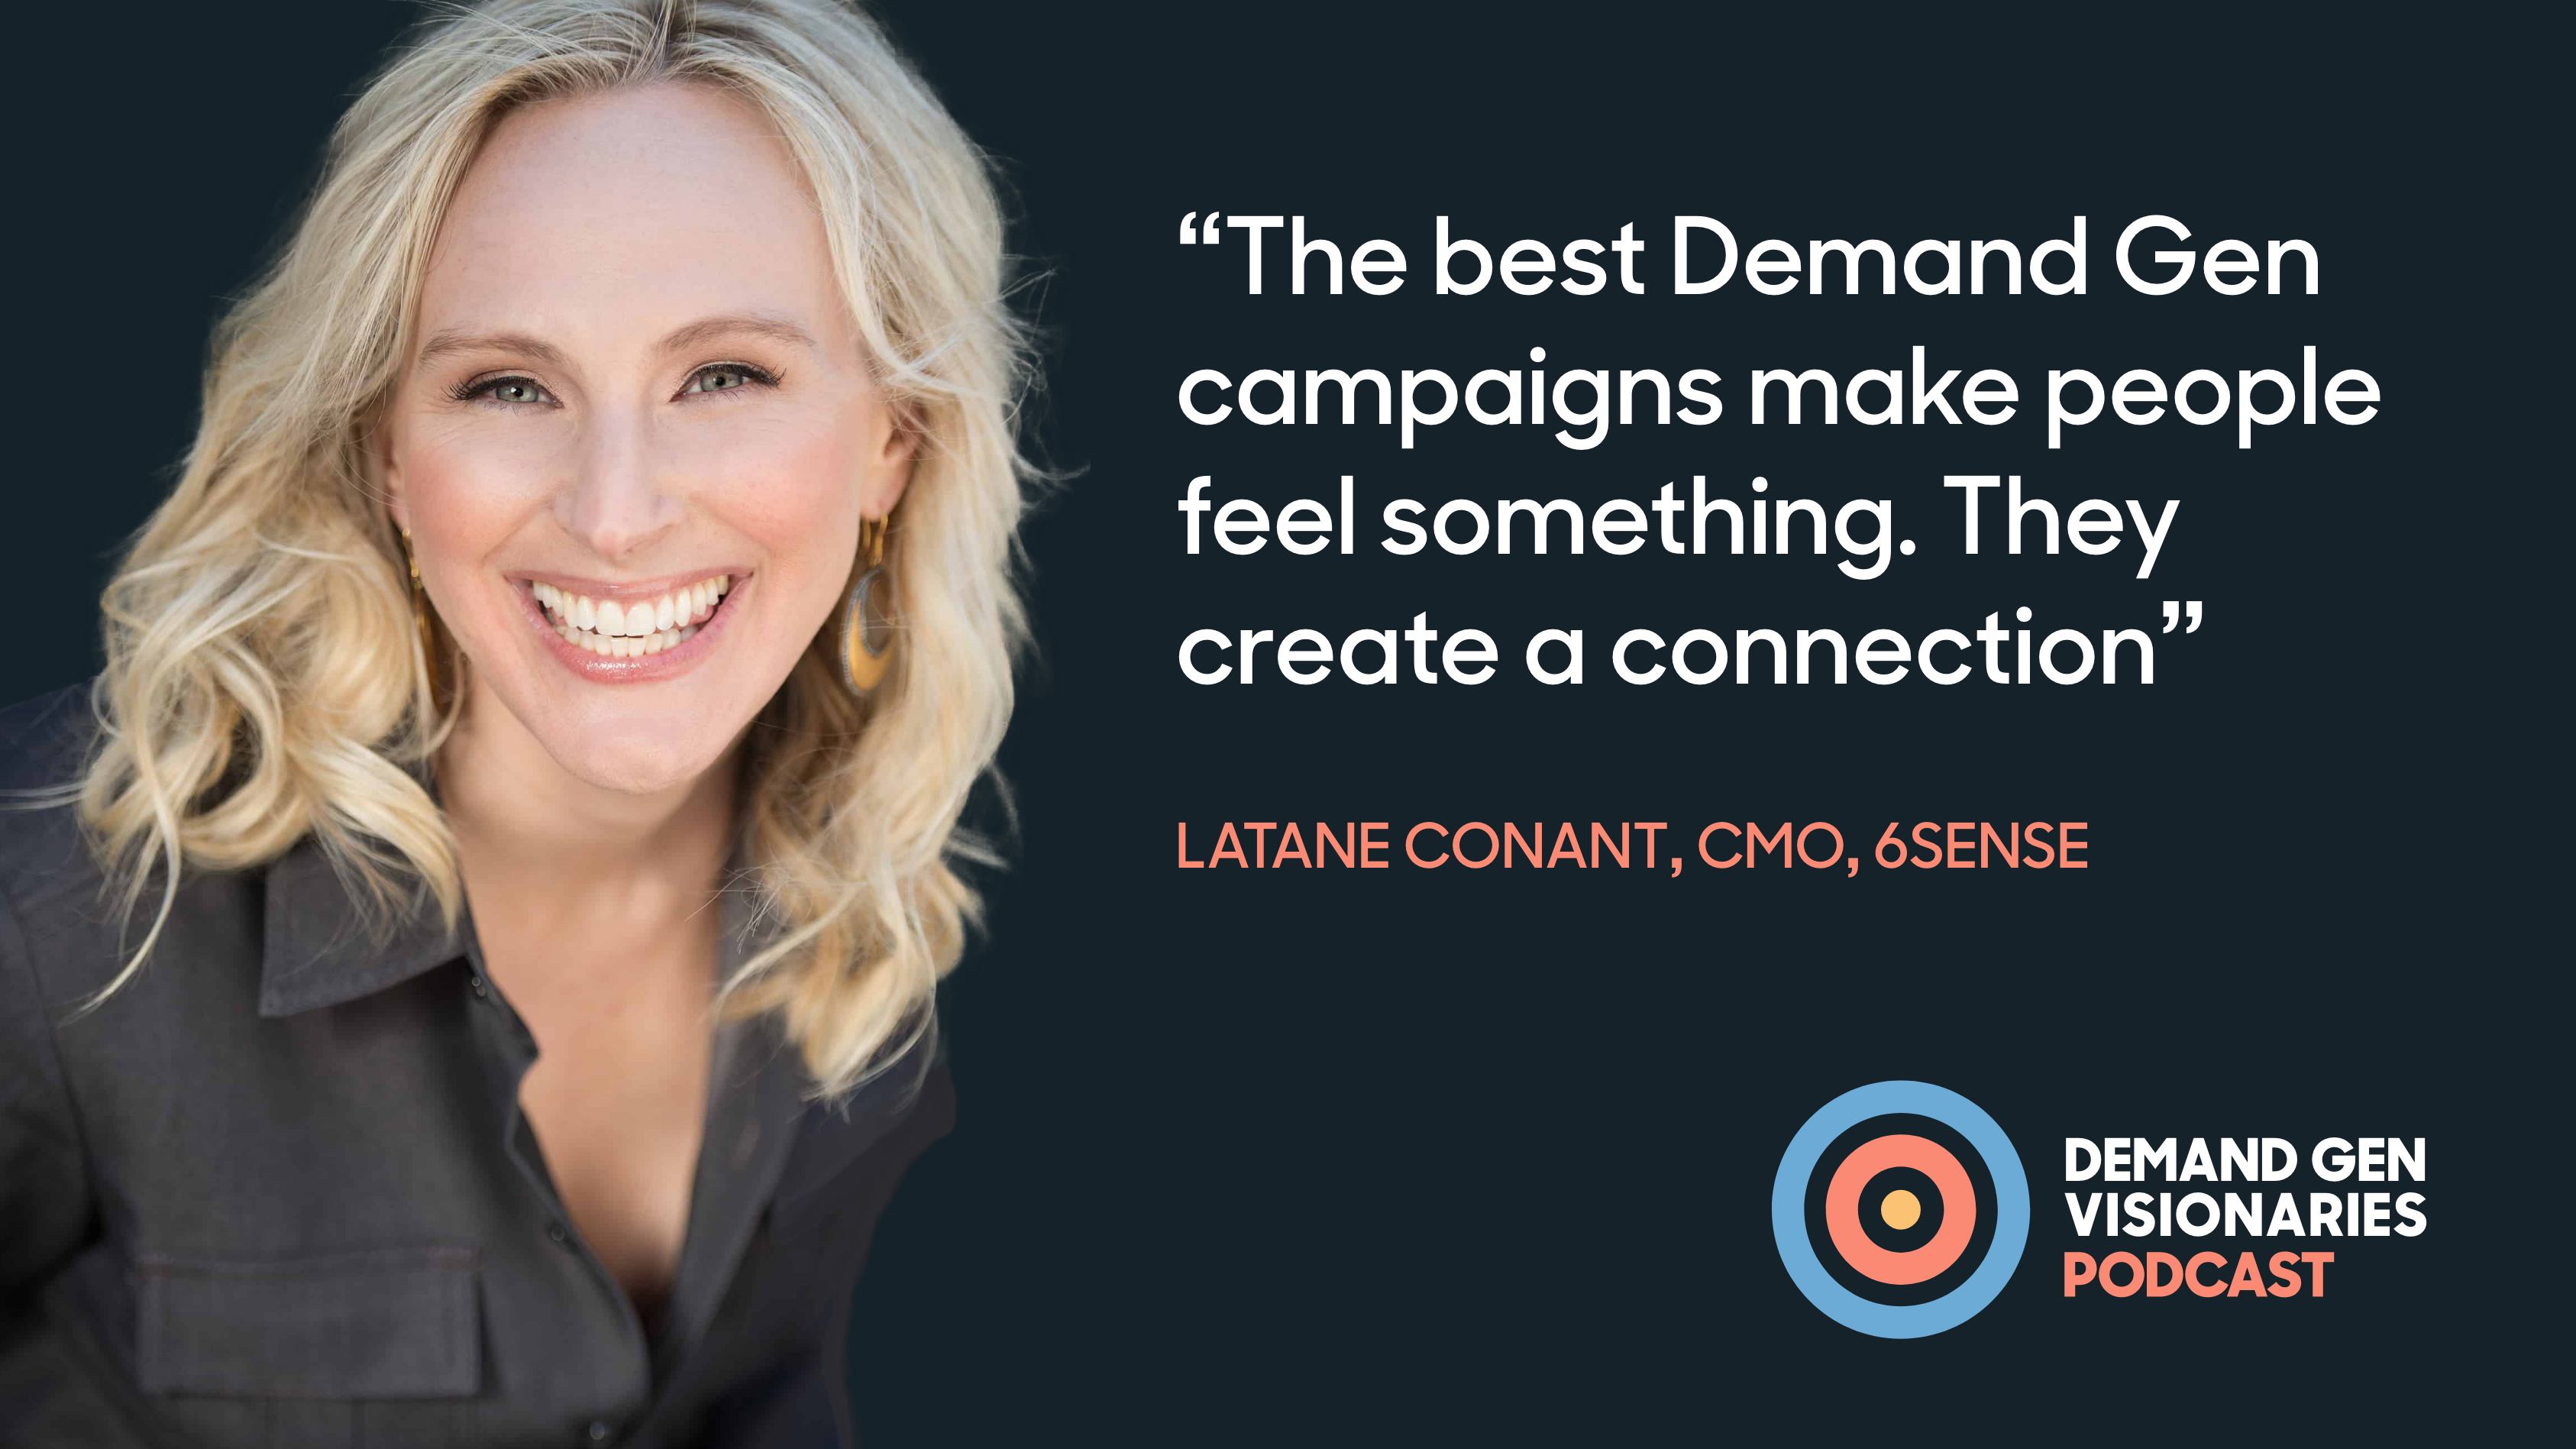 Latane Conant, CMO of ABM pioneer 6sense, speaks with Qualified.com on the Demand Gen Visionaries Podcast